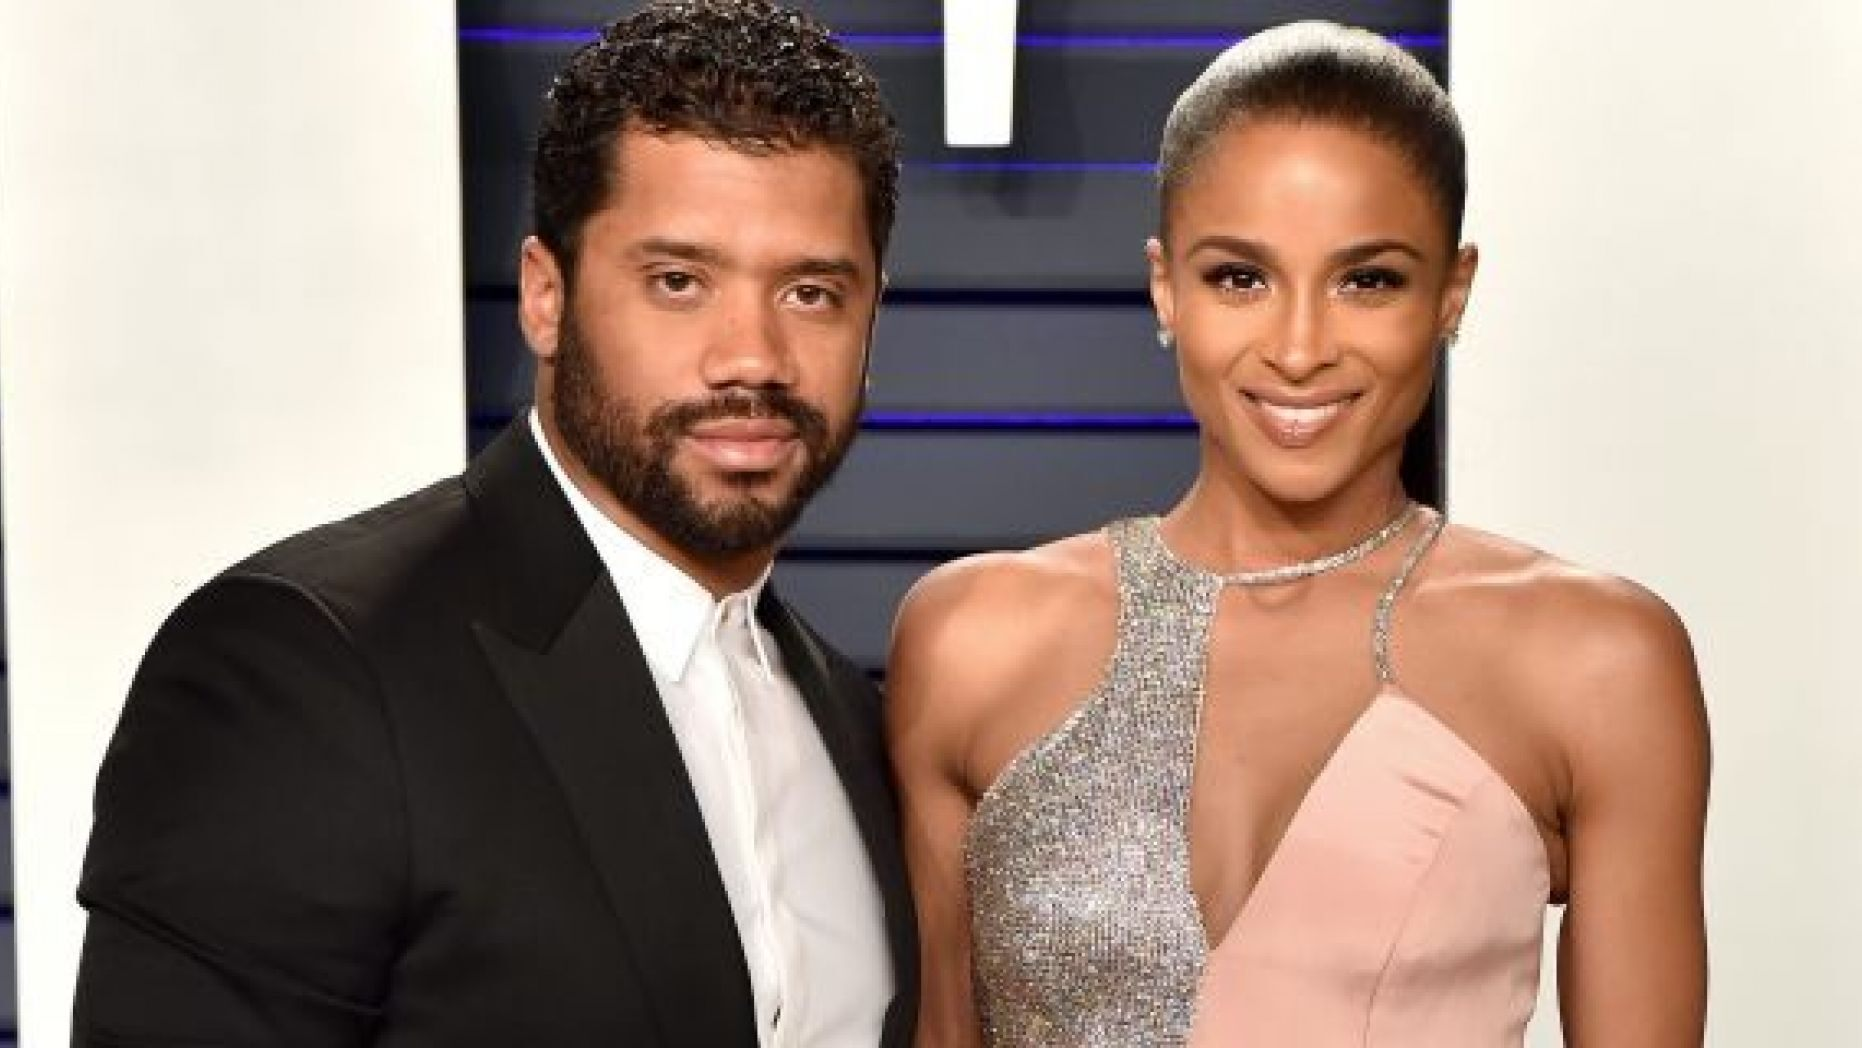 ciara-will-host-the-fifth-annual-sports-humanitarian-awards-presented-by-espn